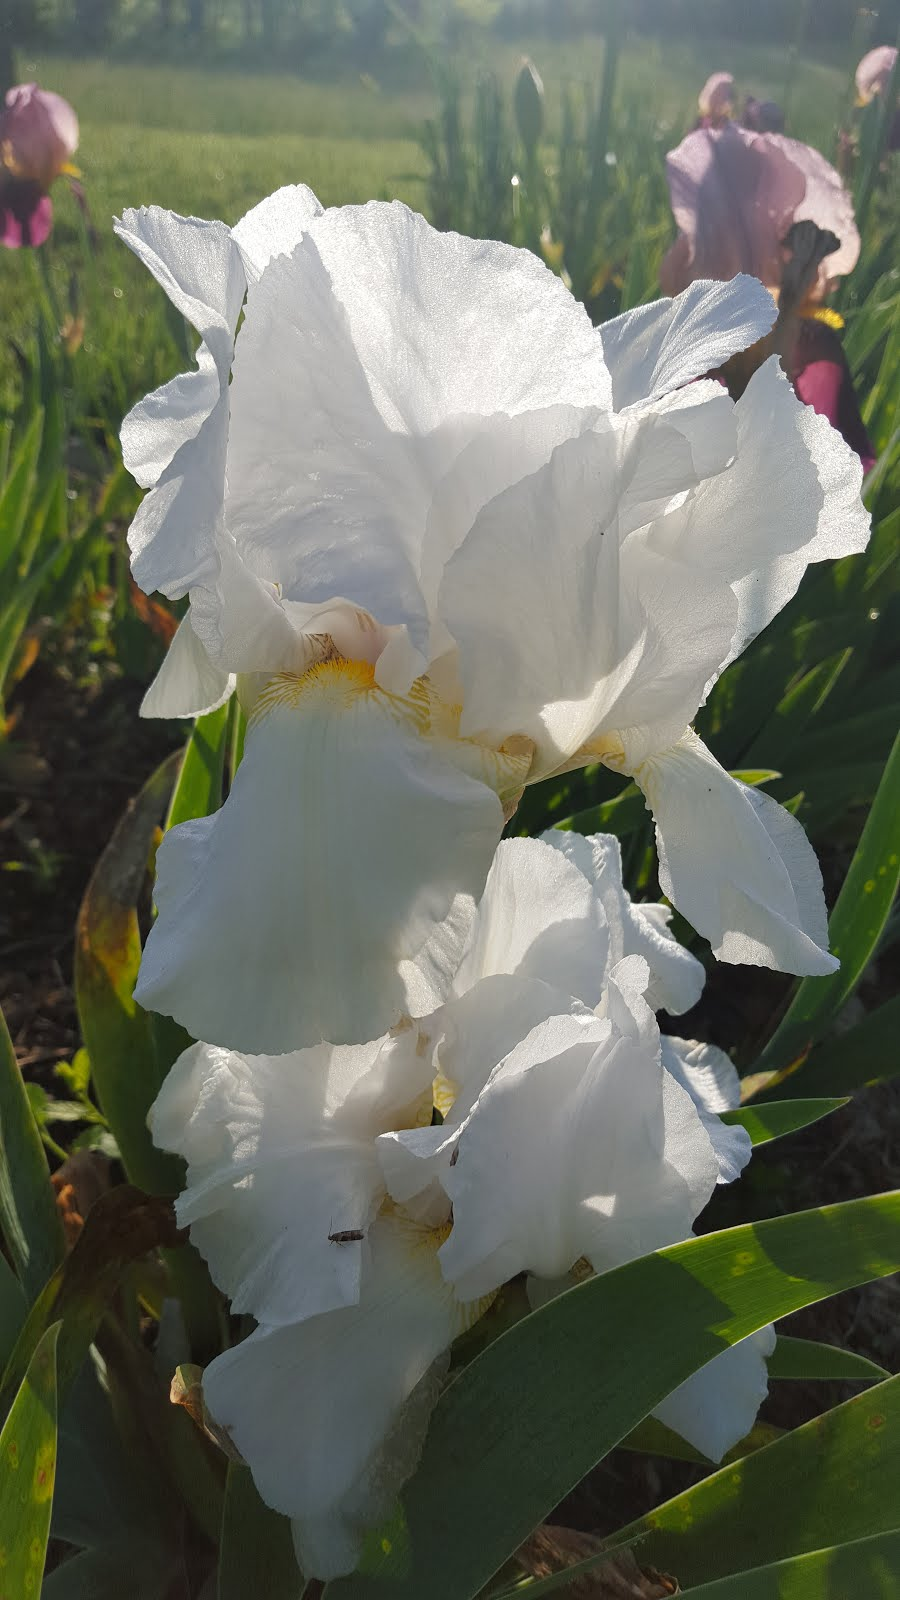 Iris Plants for Sale